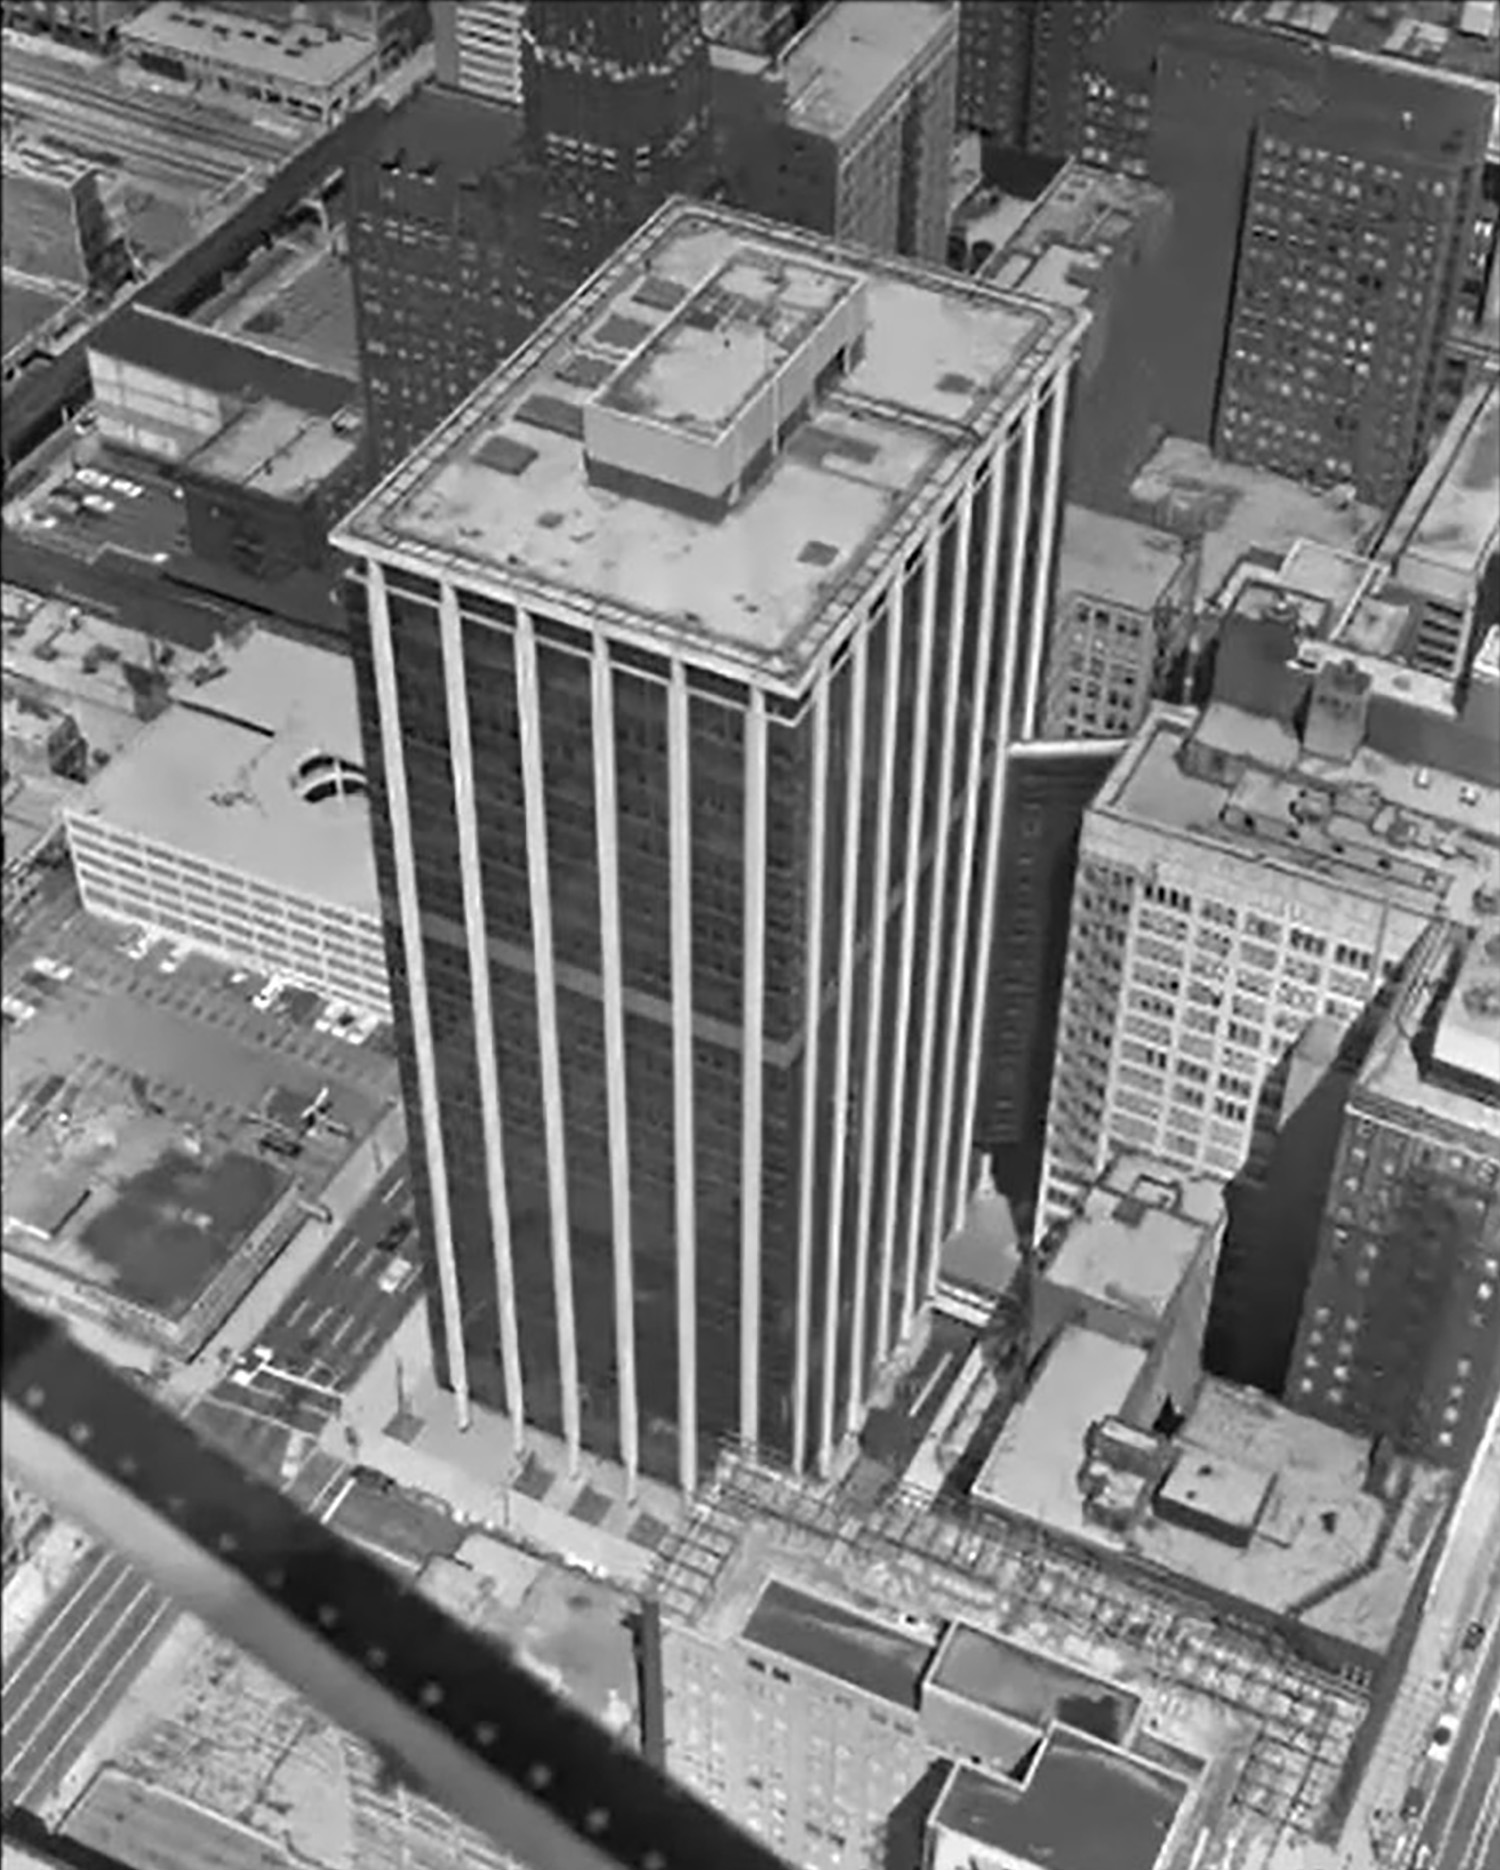 Illinois Bell Building circa 1970. Image by Chicago History Museum